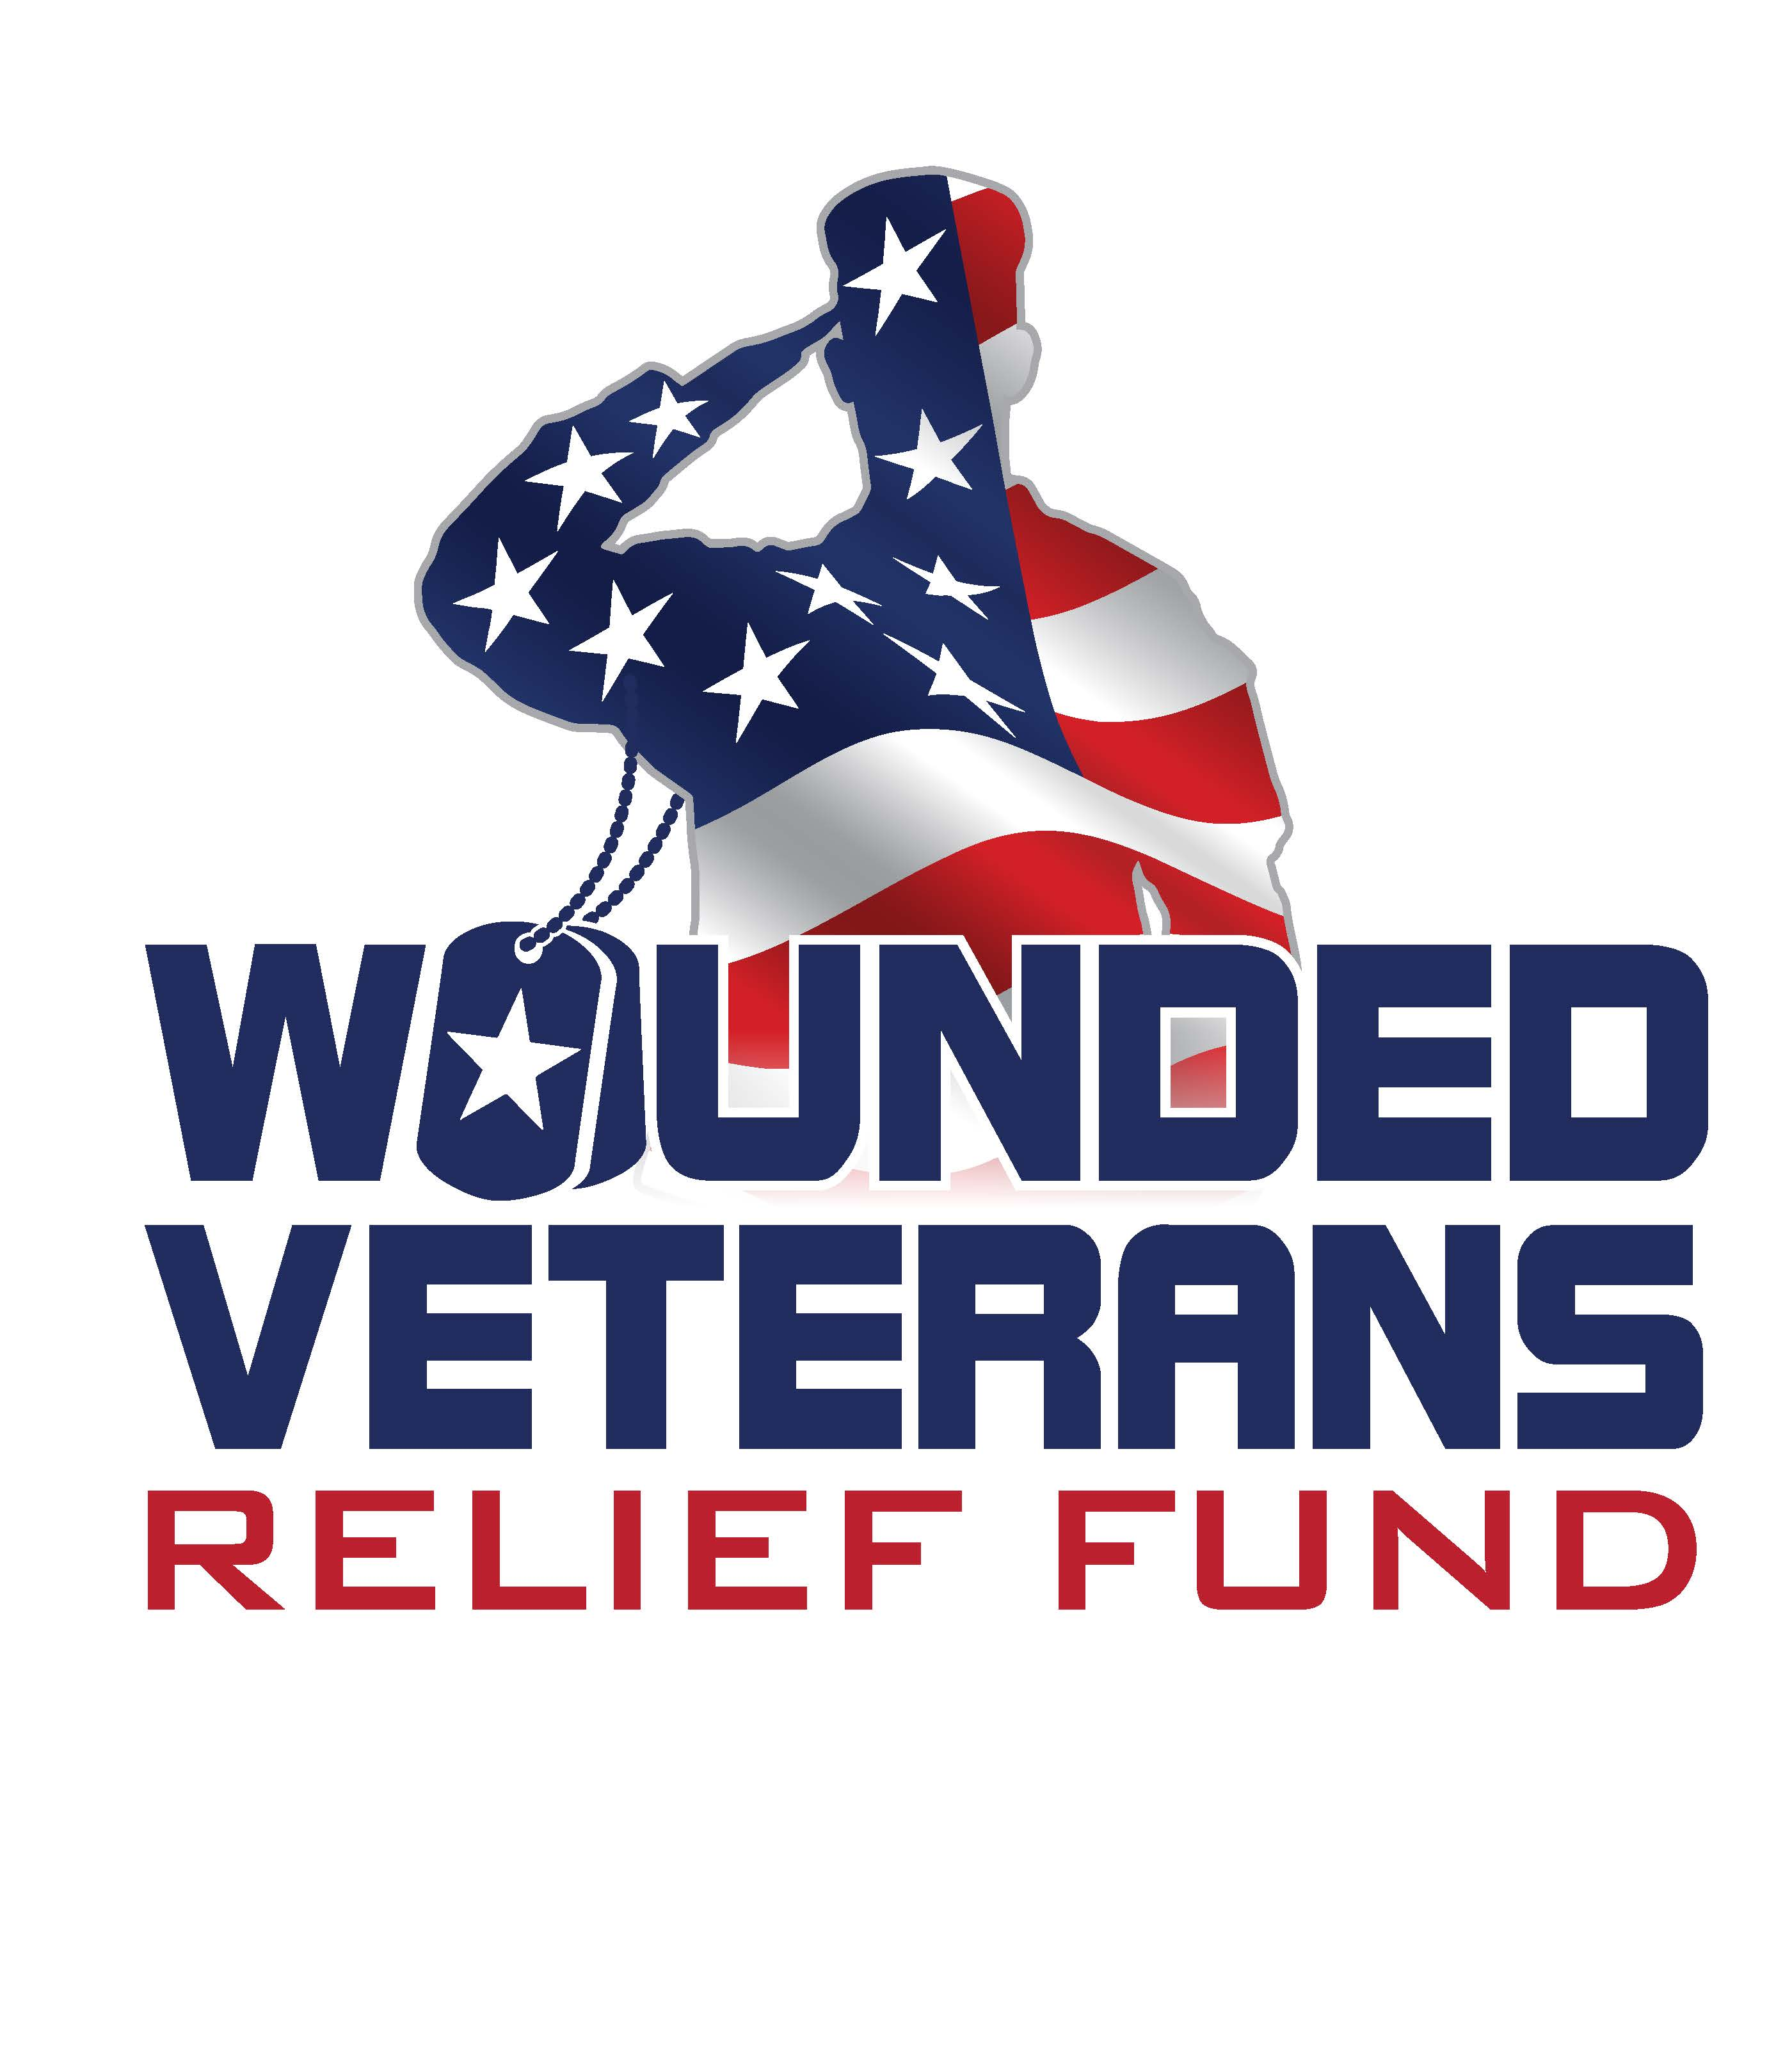 Wounded Vetrans Relief Fund Logo 2